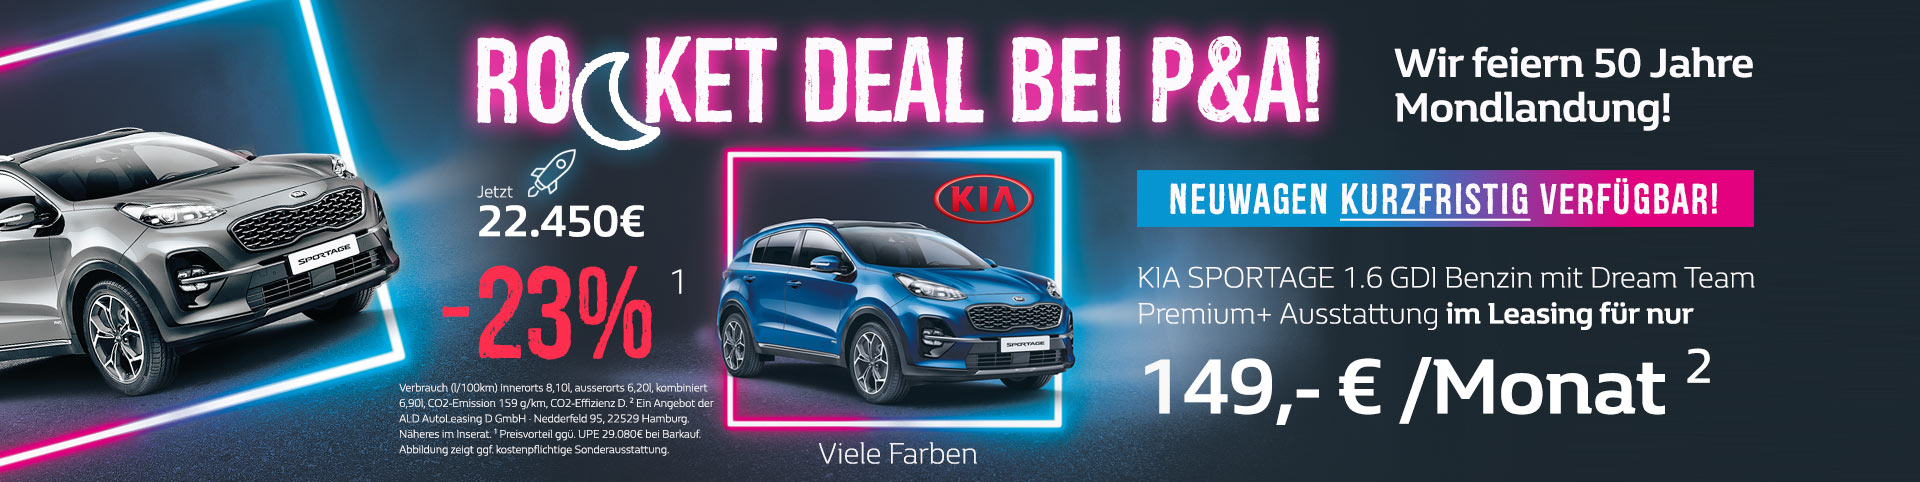 Kia Sportage Leasing Rocket Deal